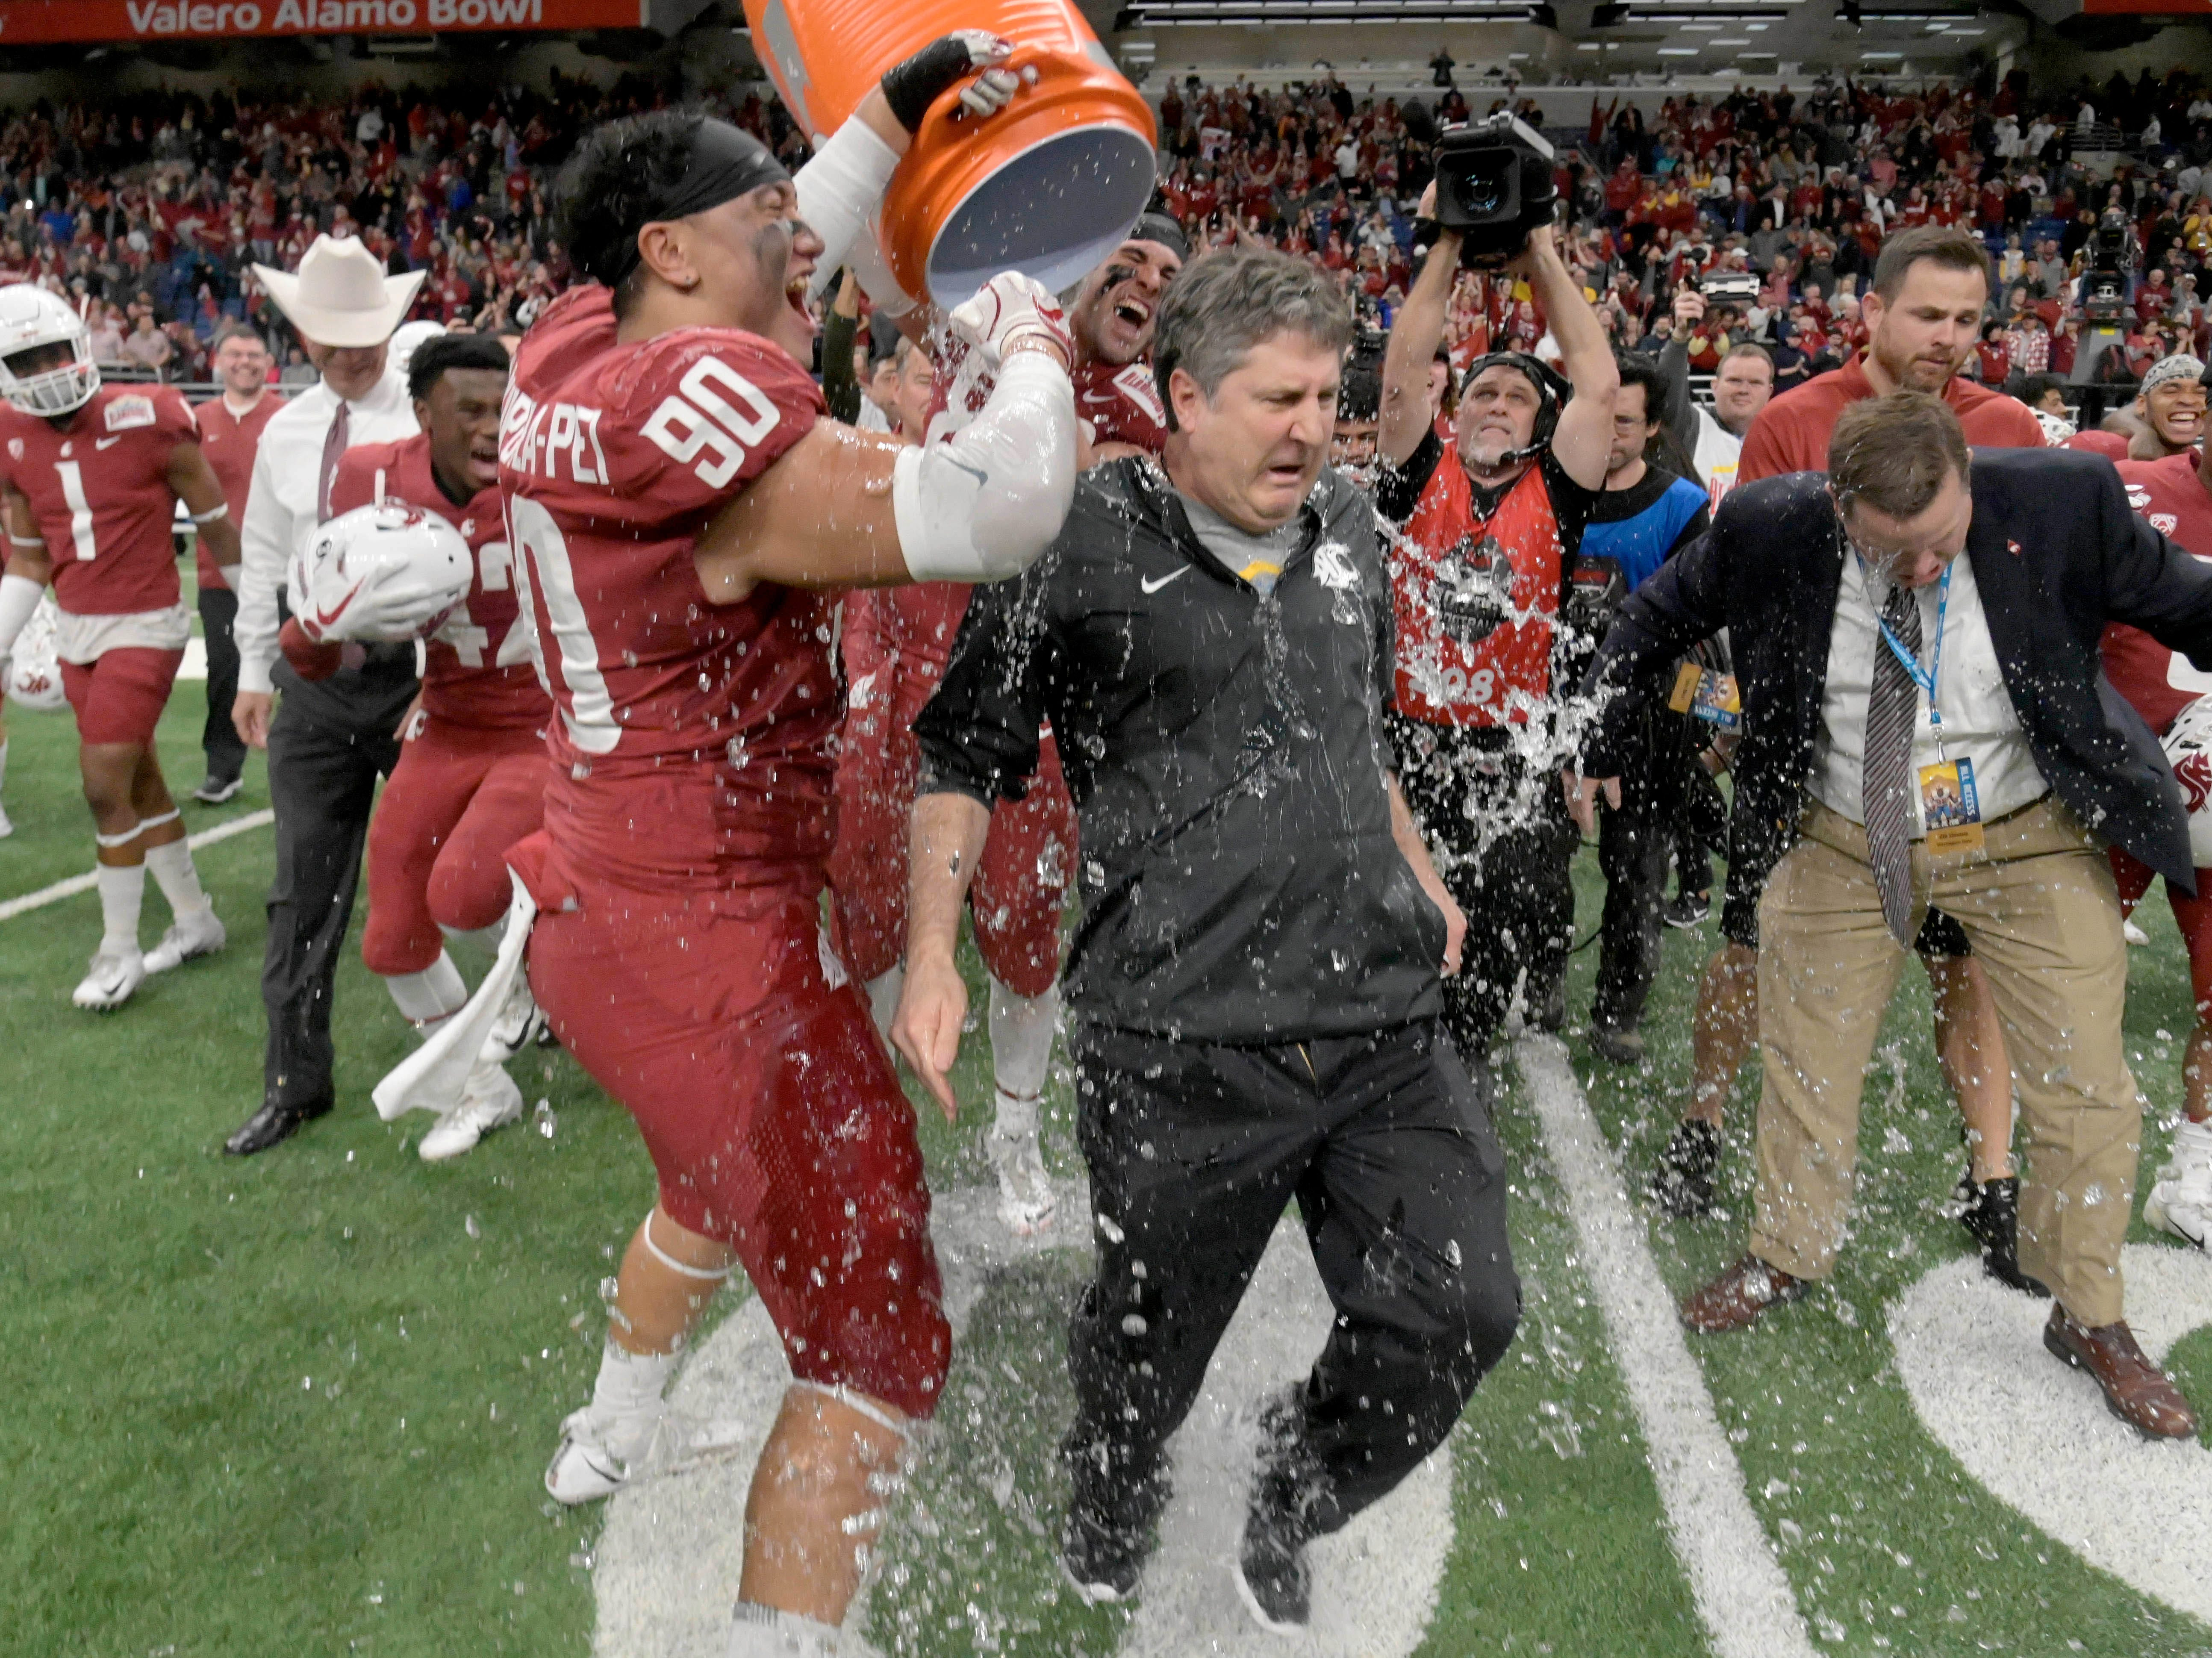 The Washington State Cougars douse head coach Mike Leach after beating Iowa State in the Alamo Bowl.